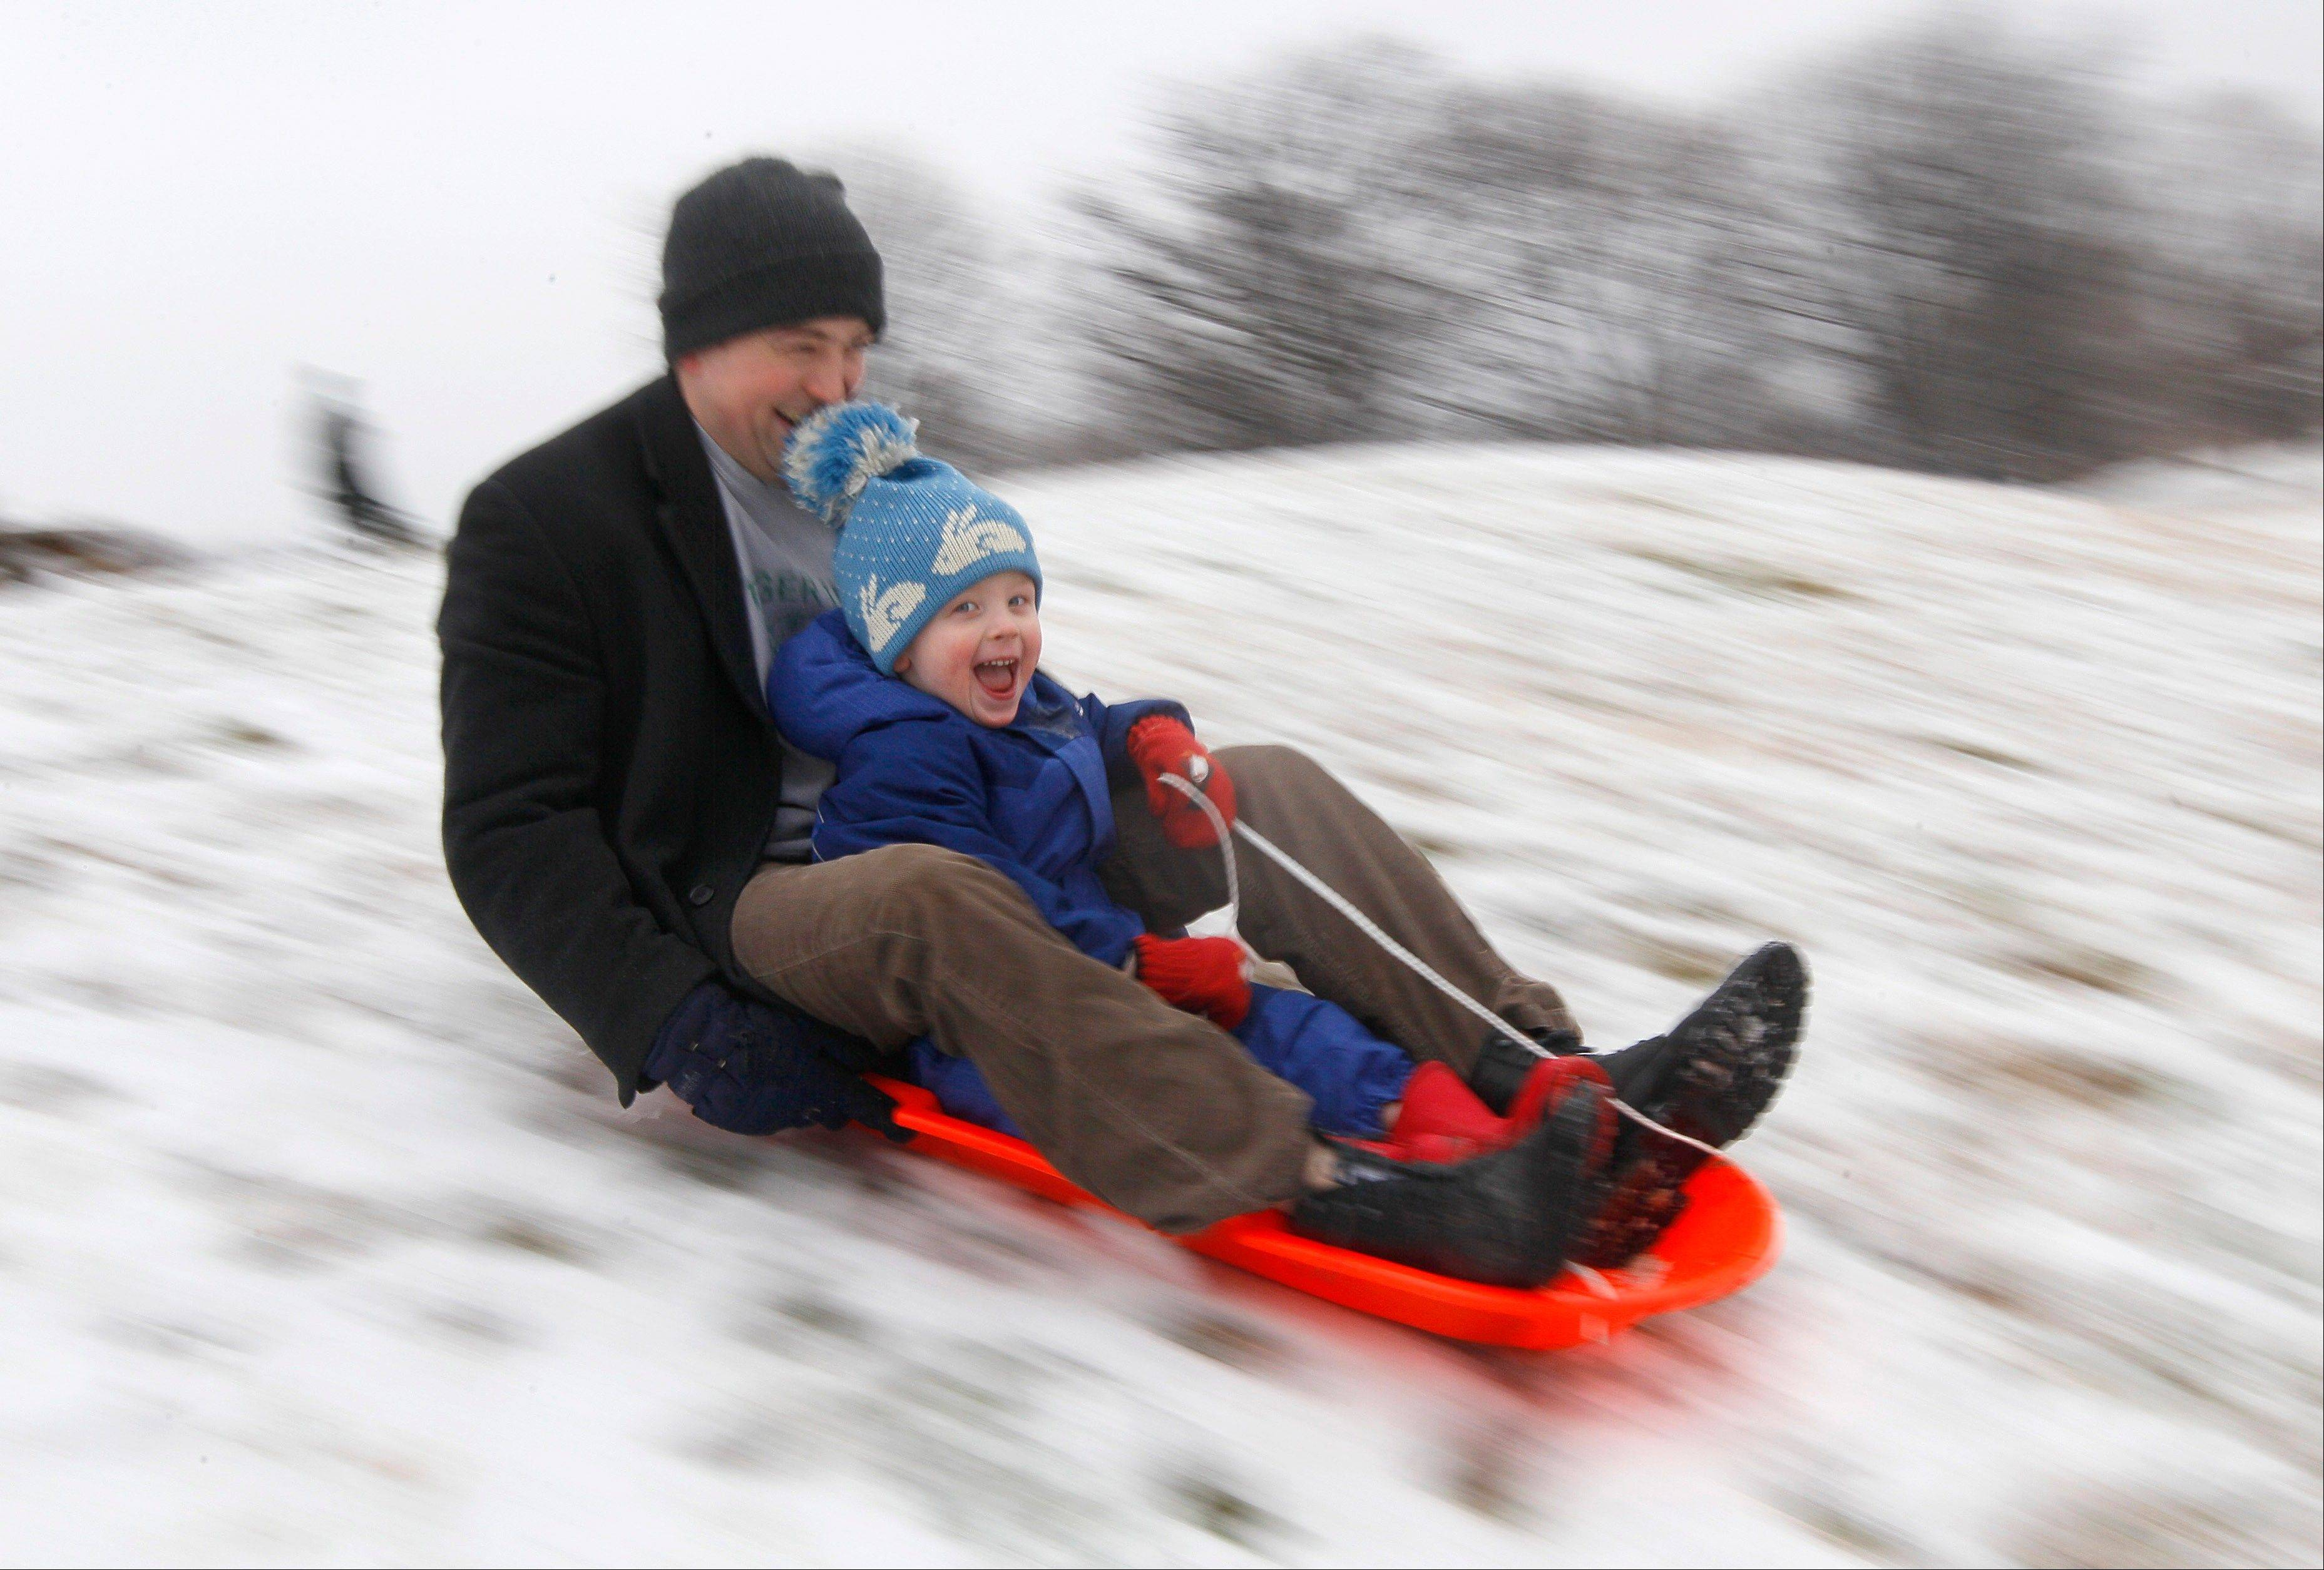 According to a government survey released on Friday, Dec. 20, 2013, the detached dad is mostly a myth. Most American fathers say they are heavily involved in hands-on parenting, the researchers found.